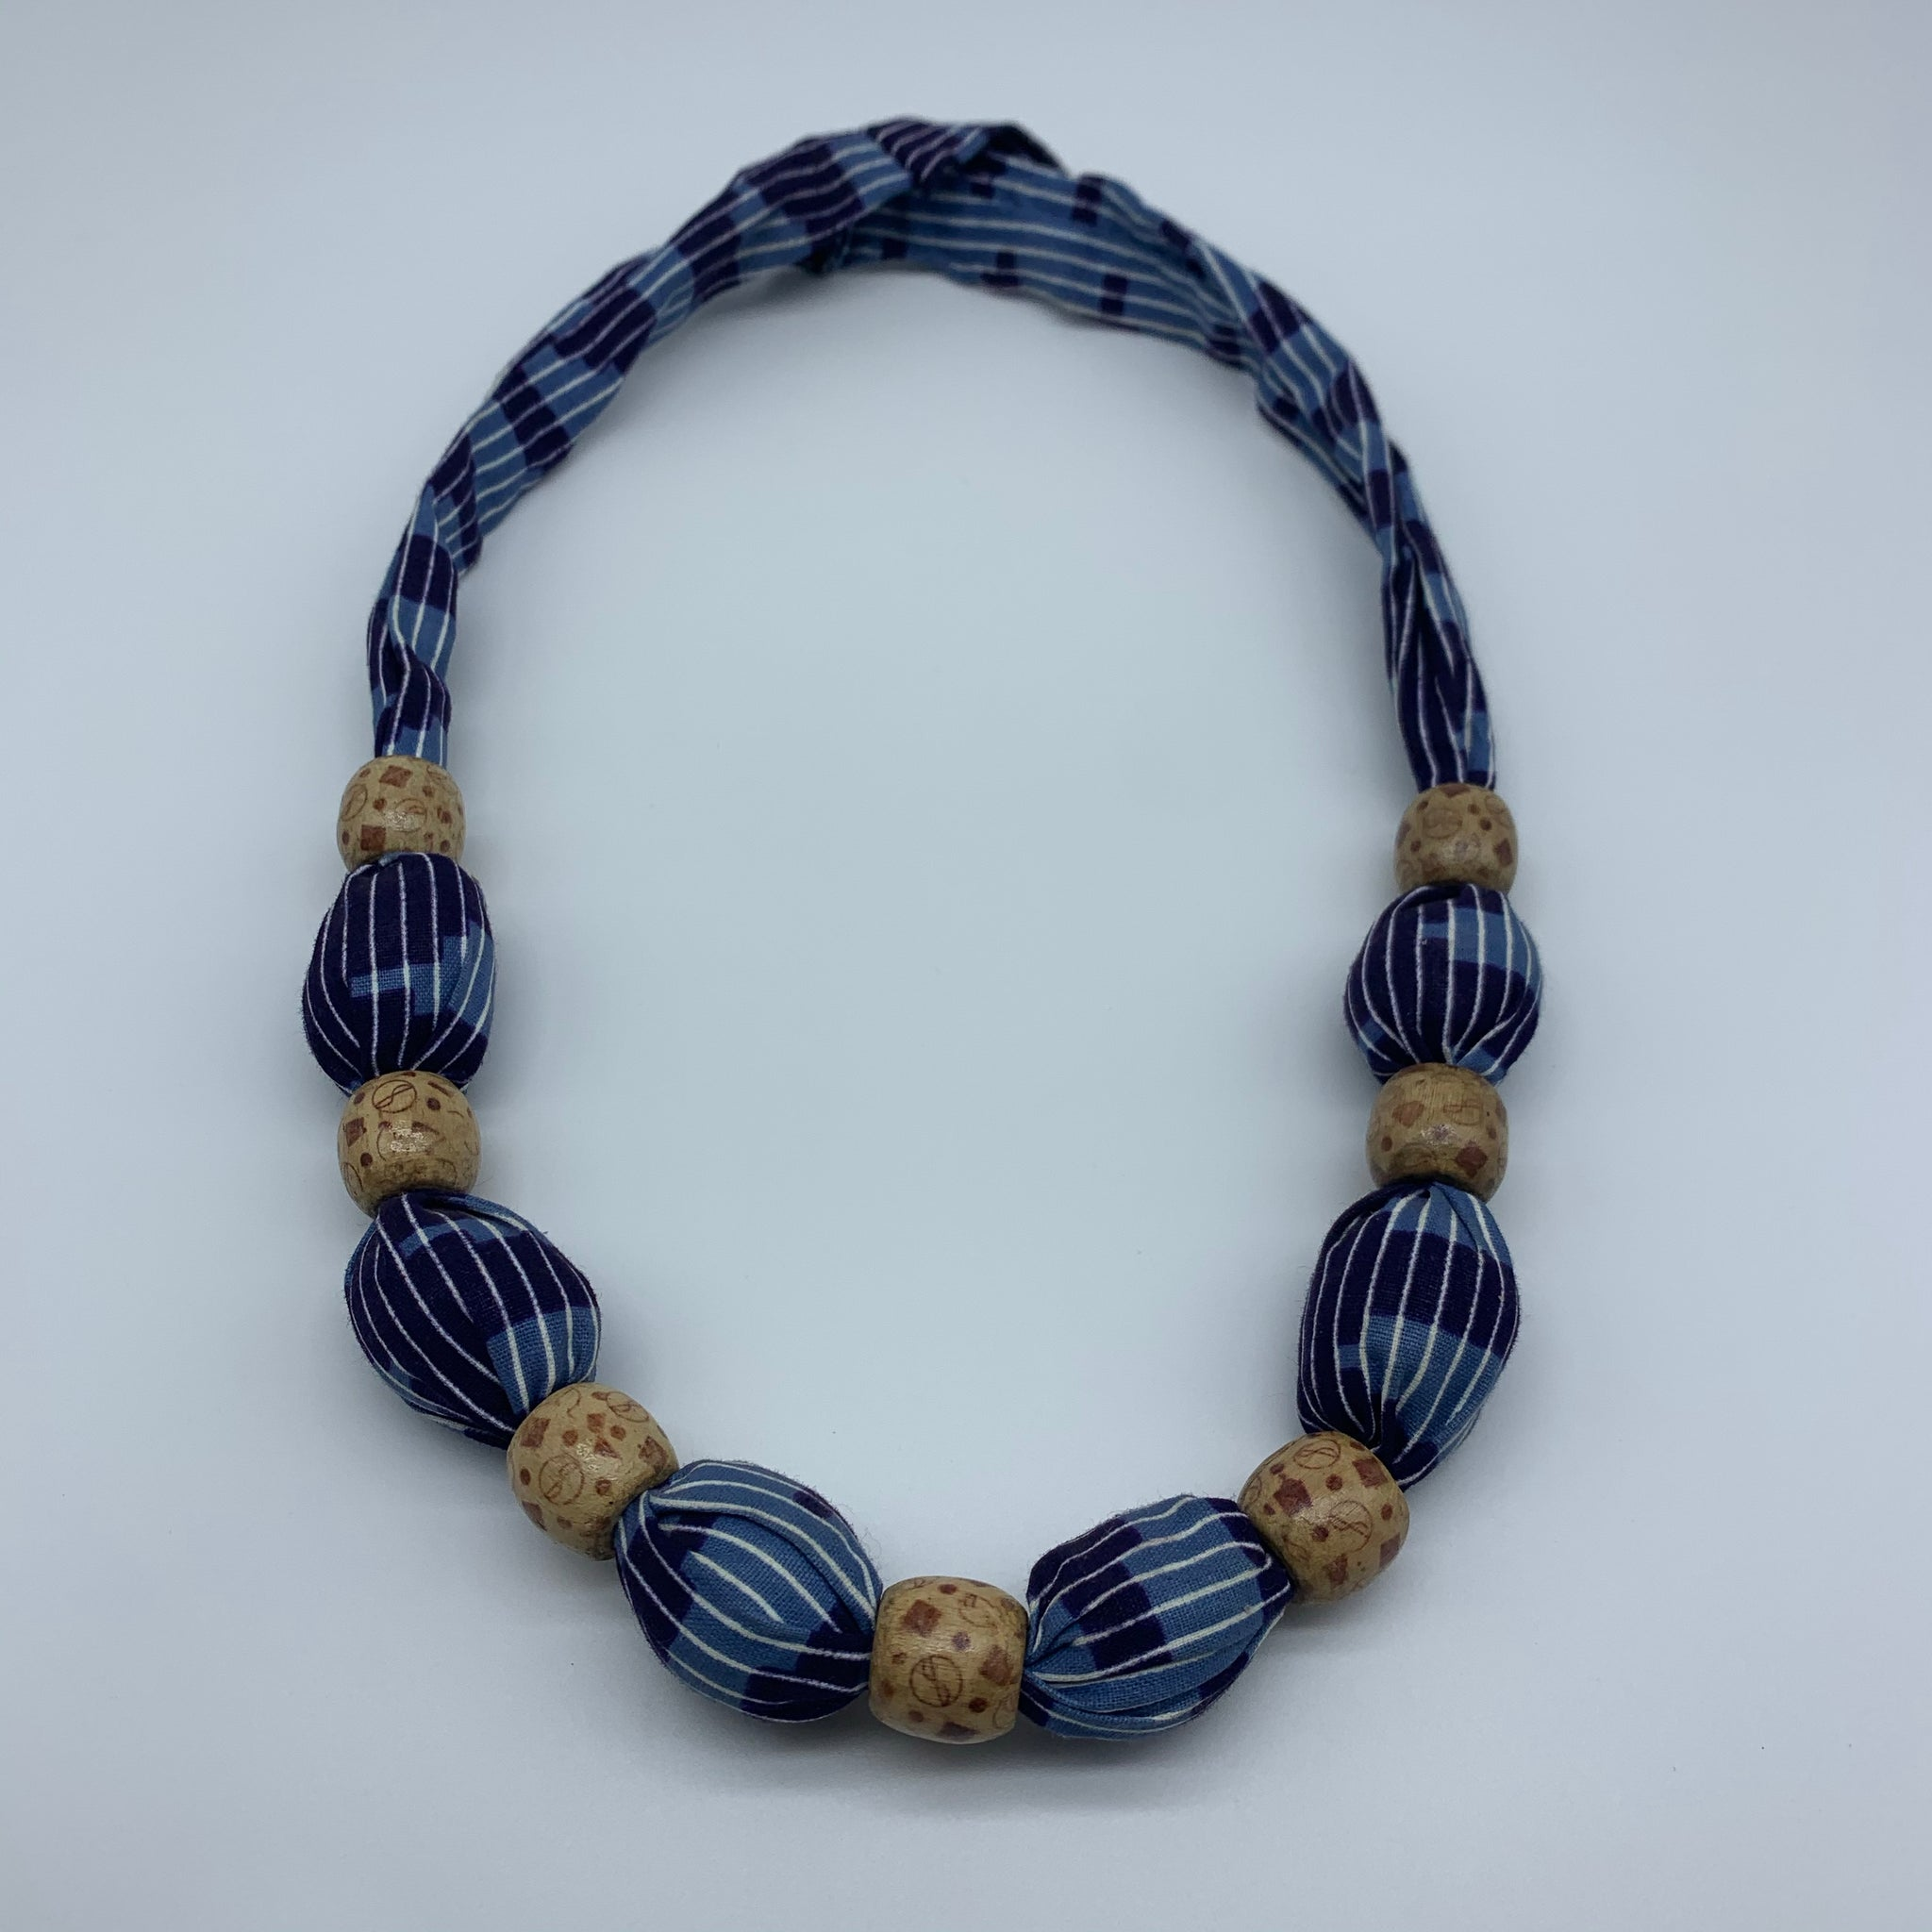 African Print Necklace W/Wooden Beads-Blue Variation 2